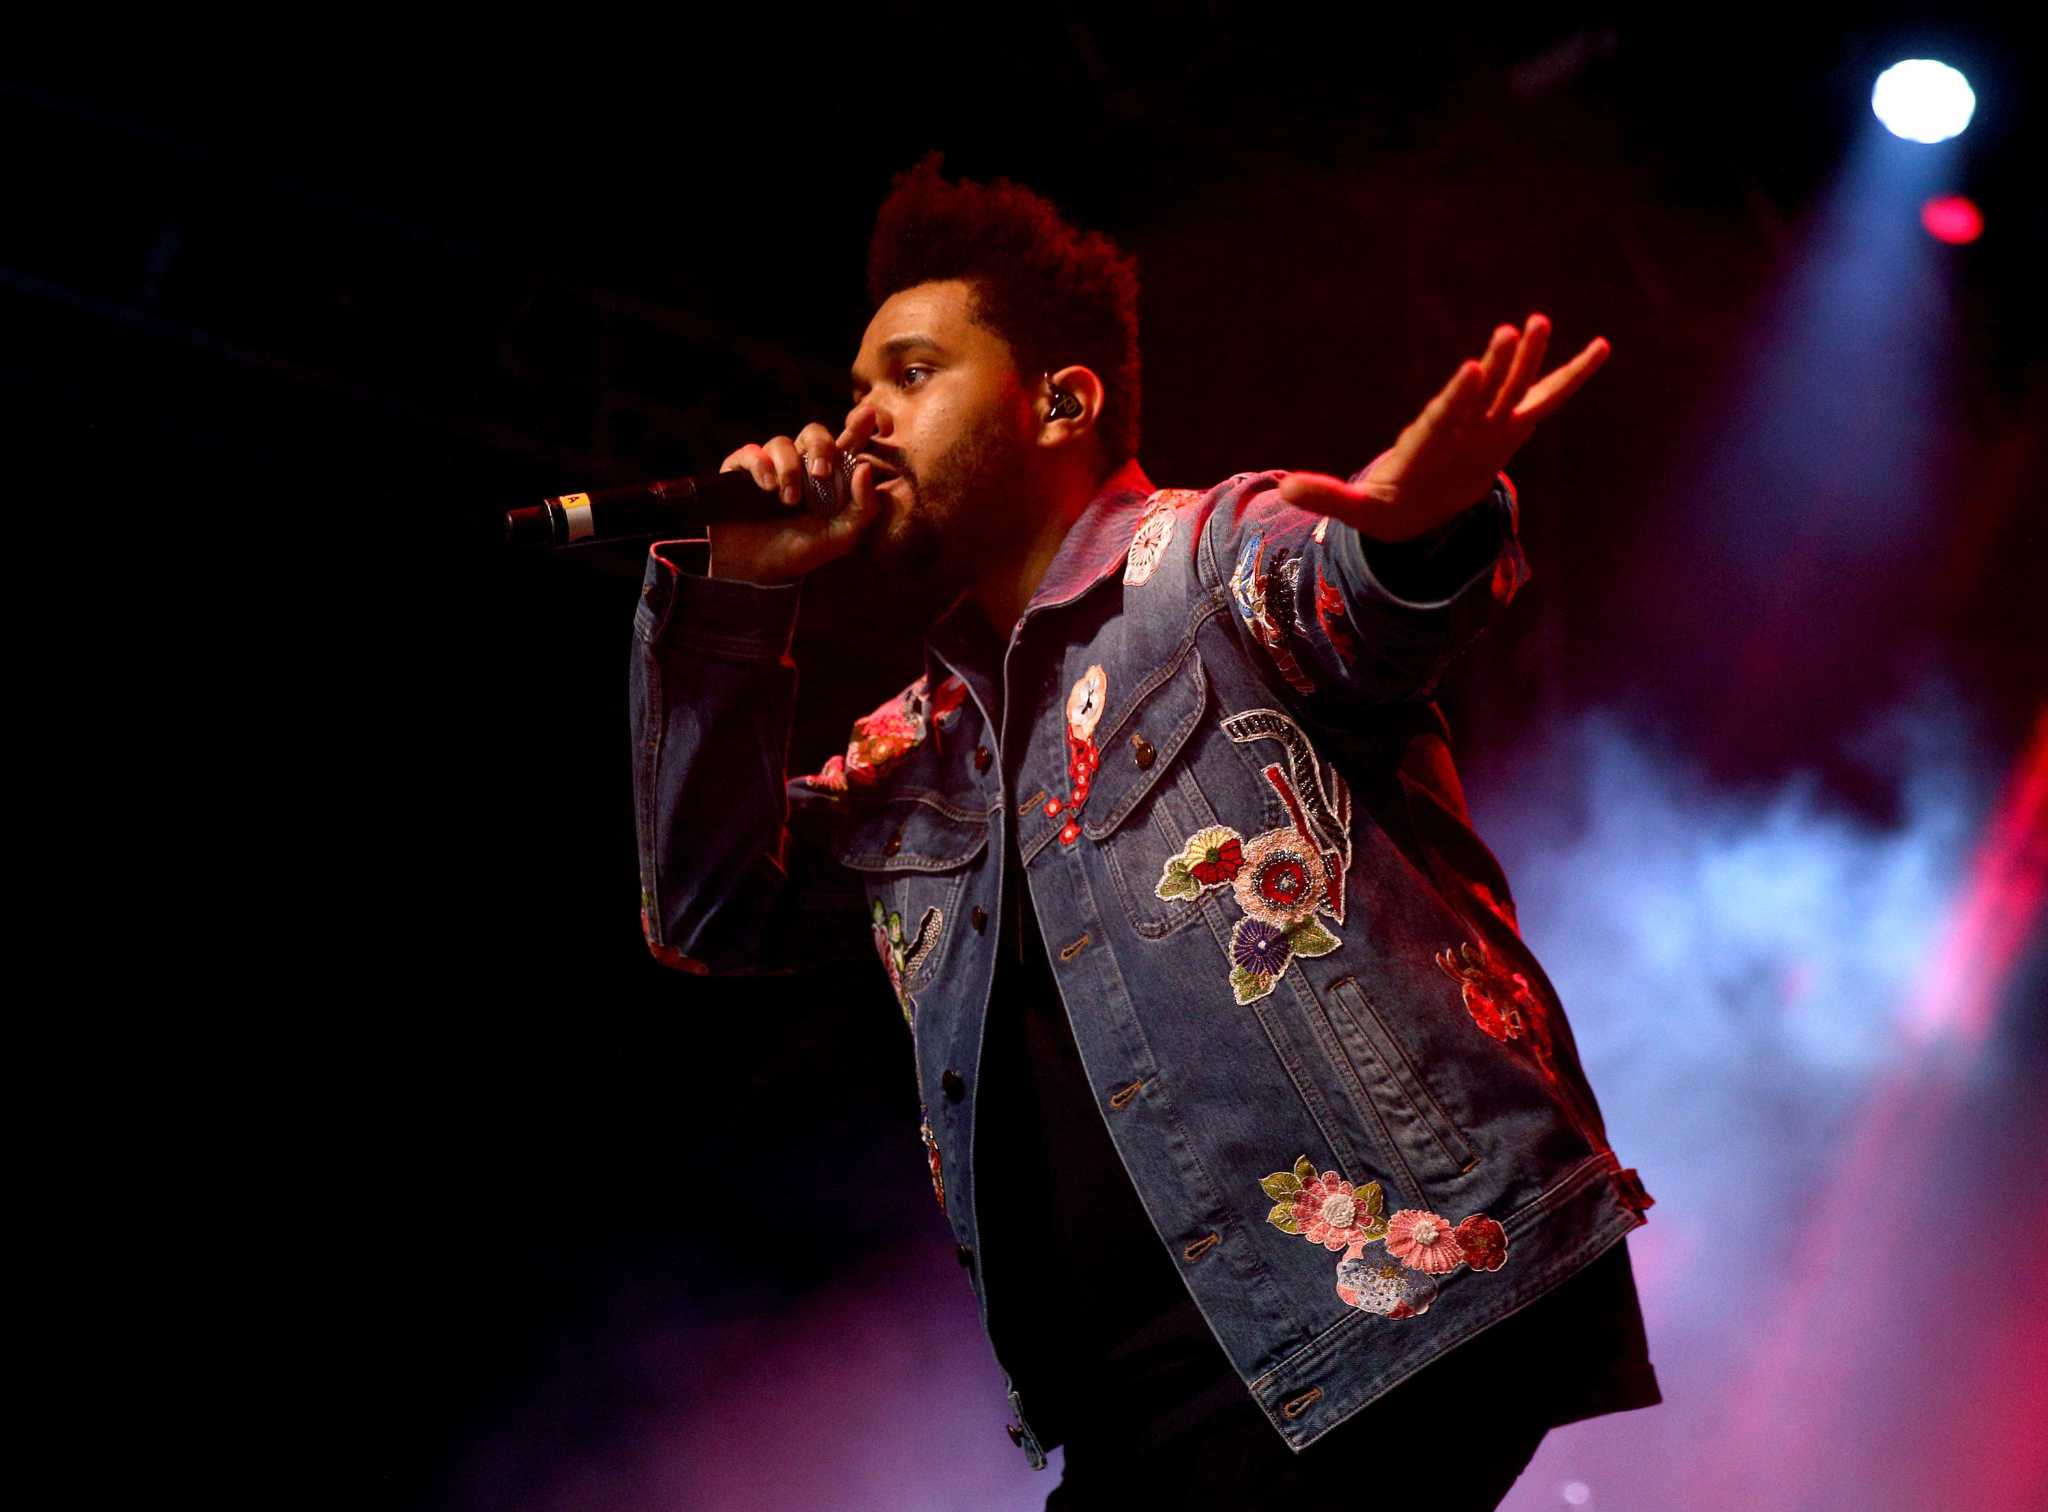 The weeknd concert dates in Melbourne